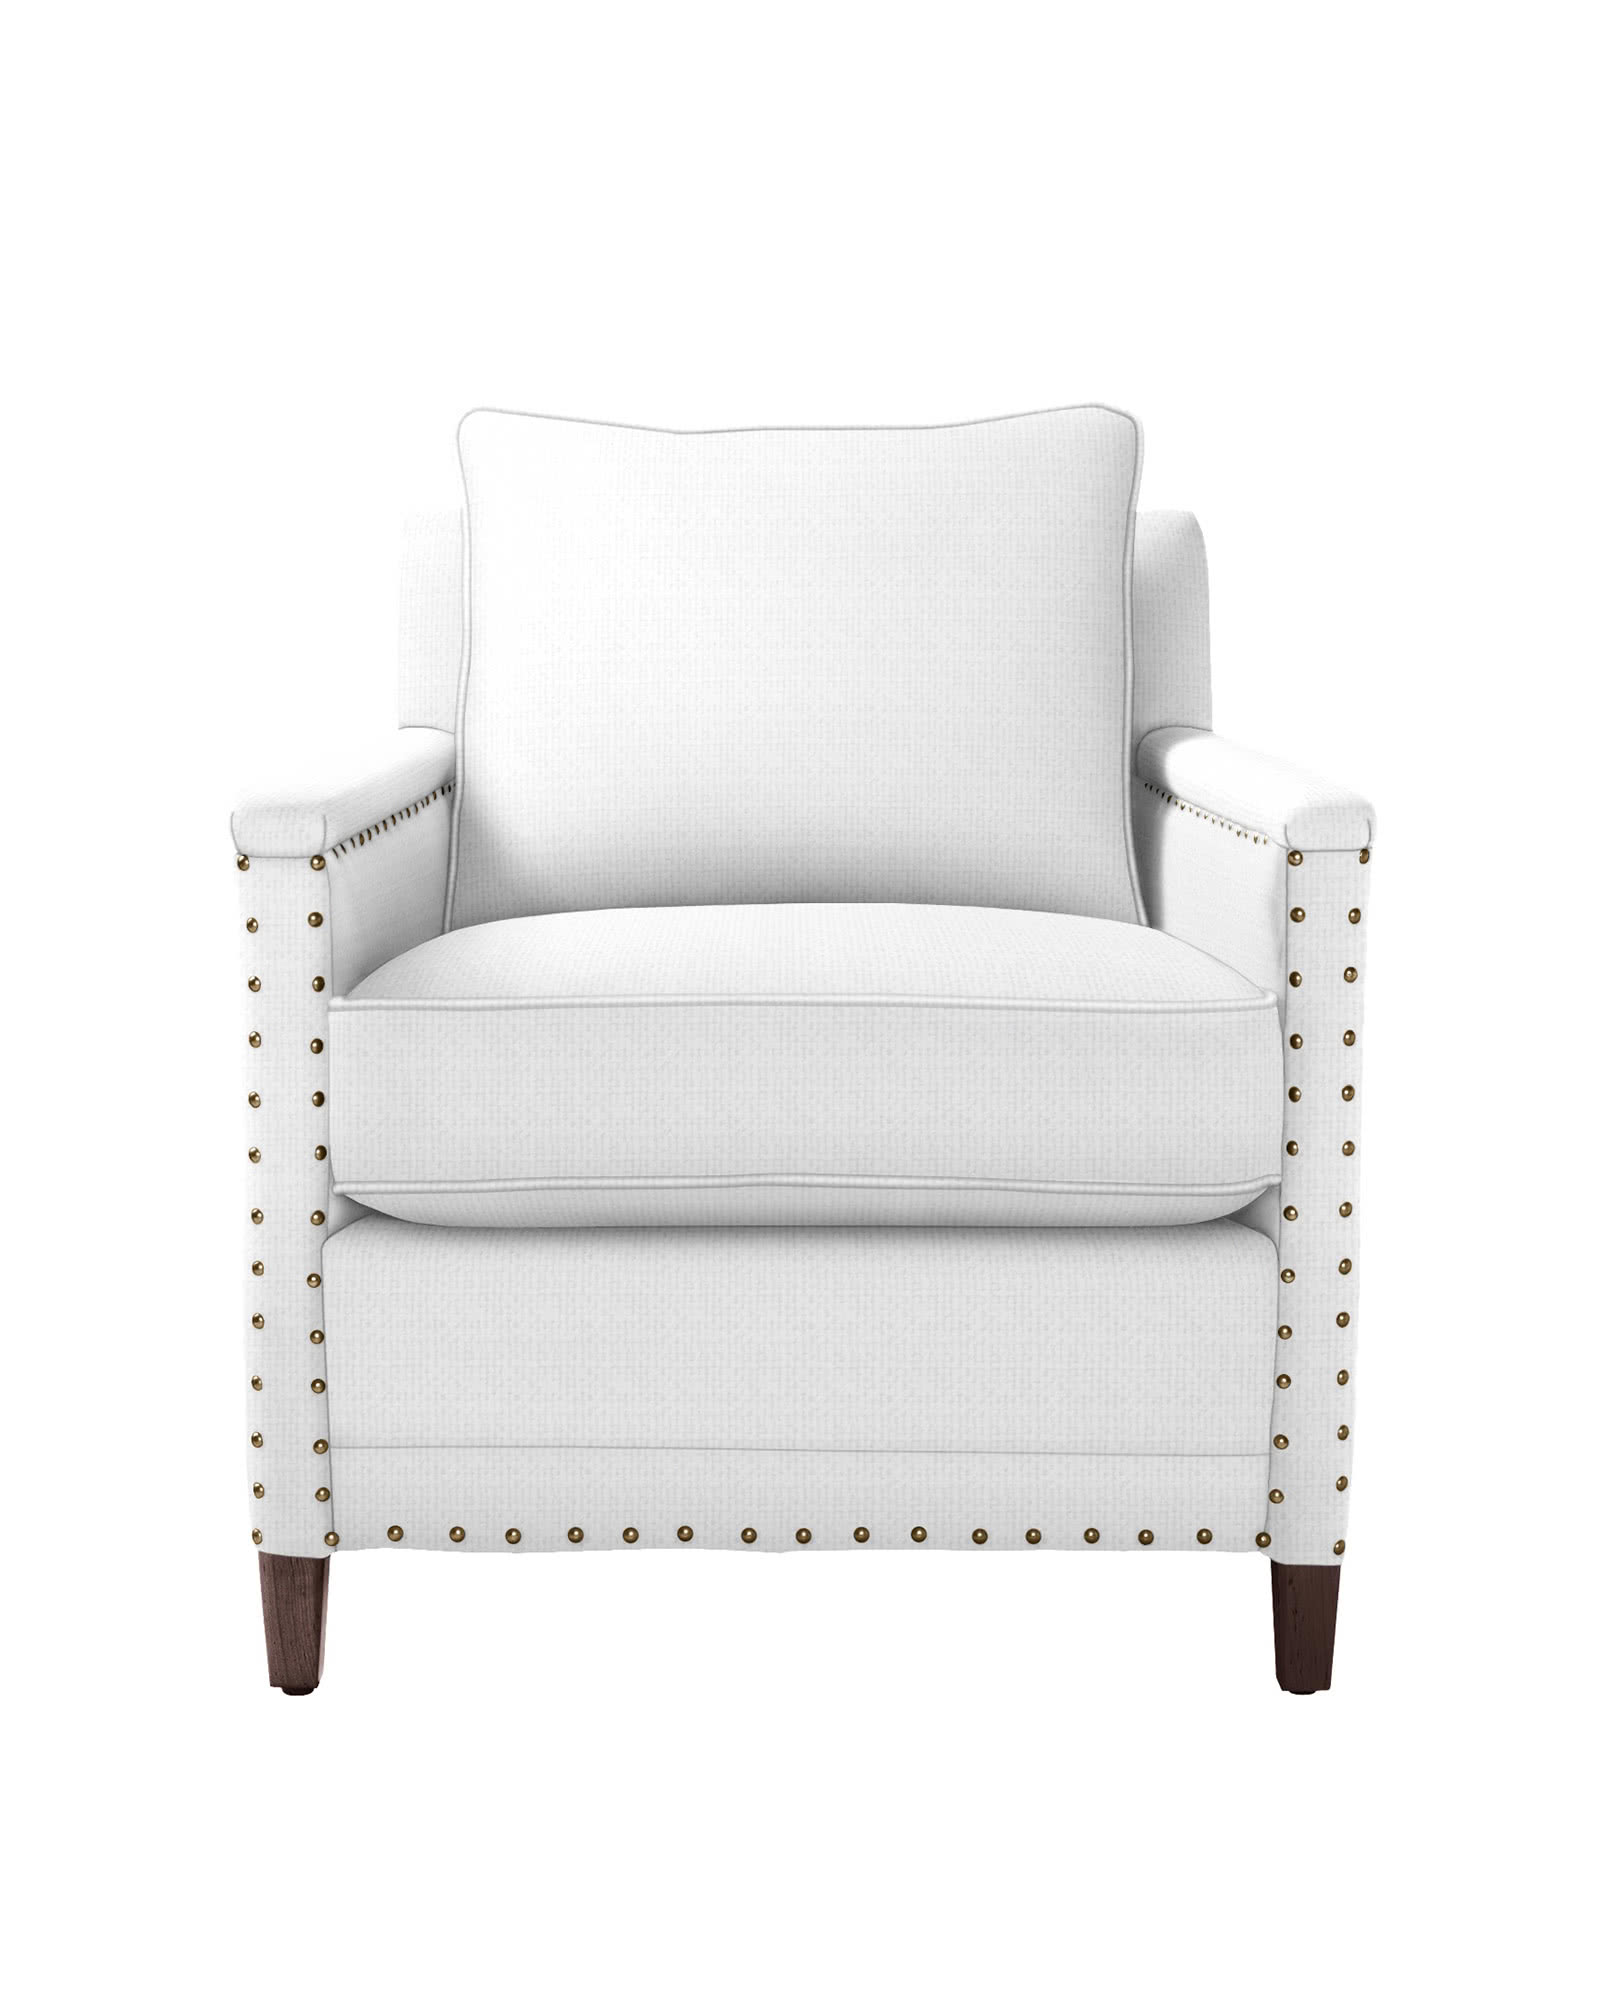 Spruce Street Chair with Nailheads,